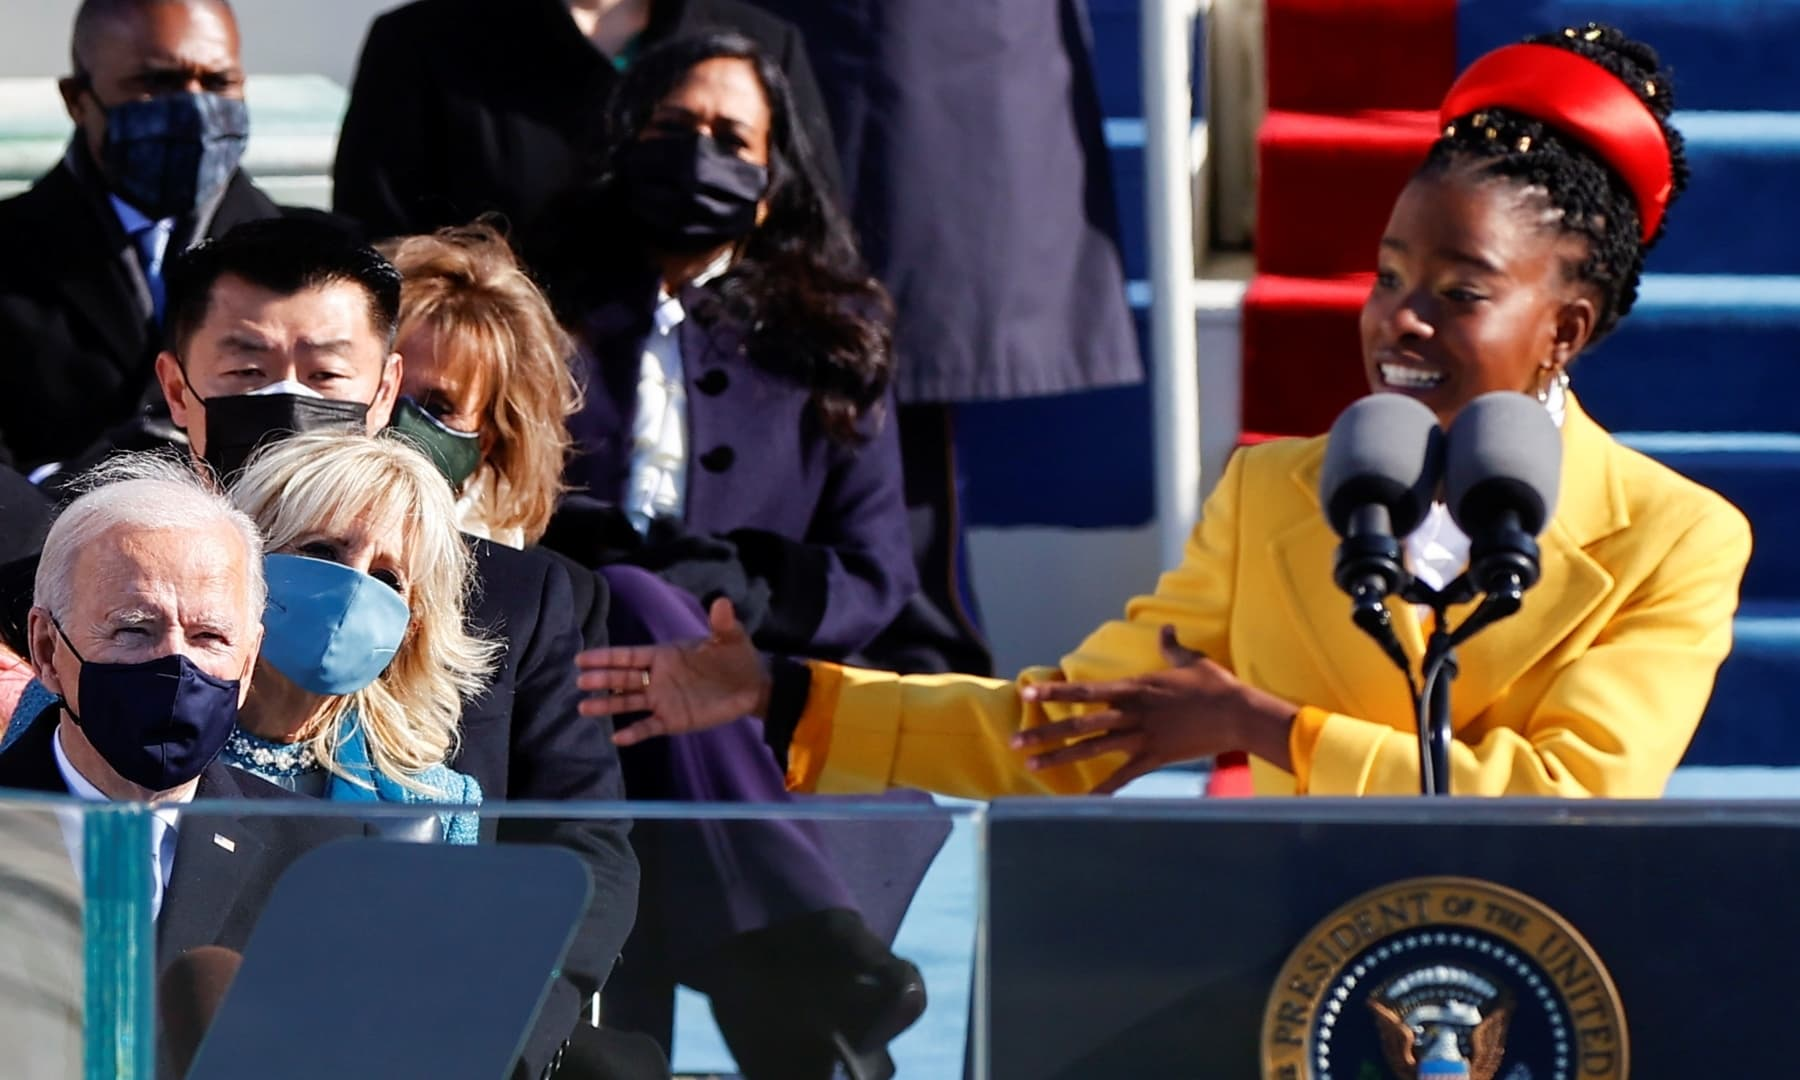 US President Joe Biden listens as Amanda Gorman recites a poem during his inauguration on the West Front of the US Capitol in Washington. — Reuters